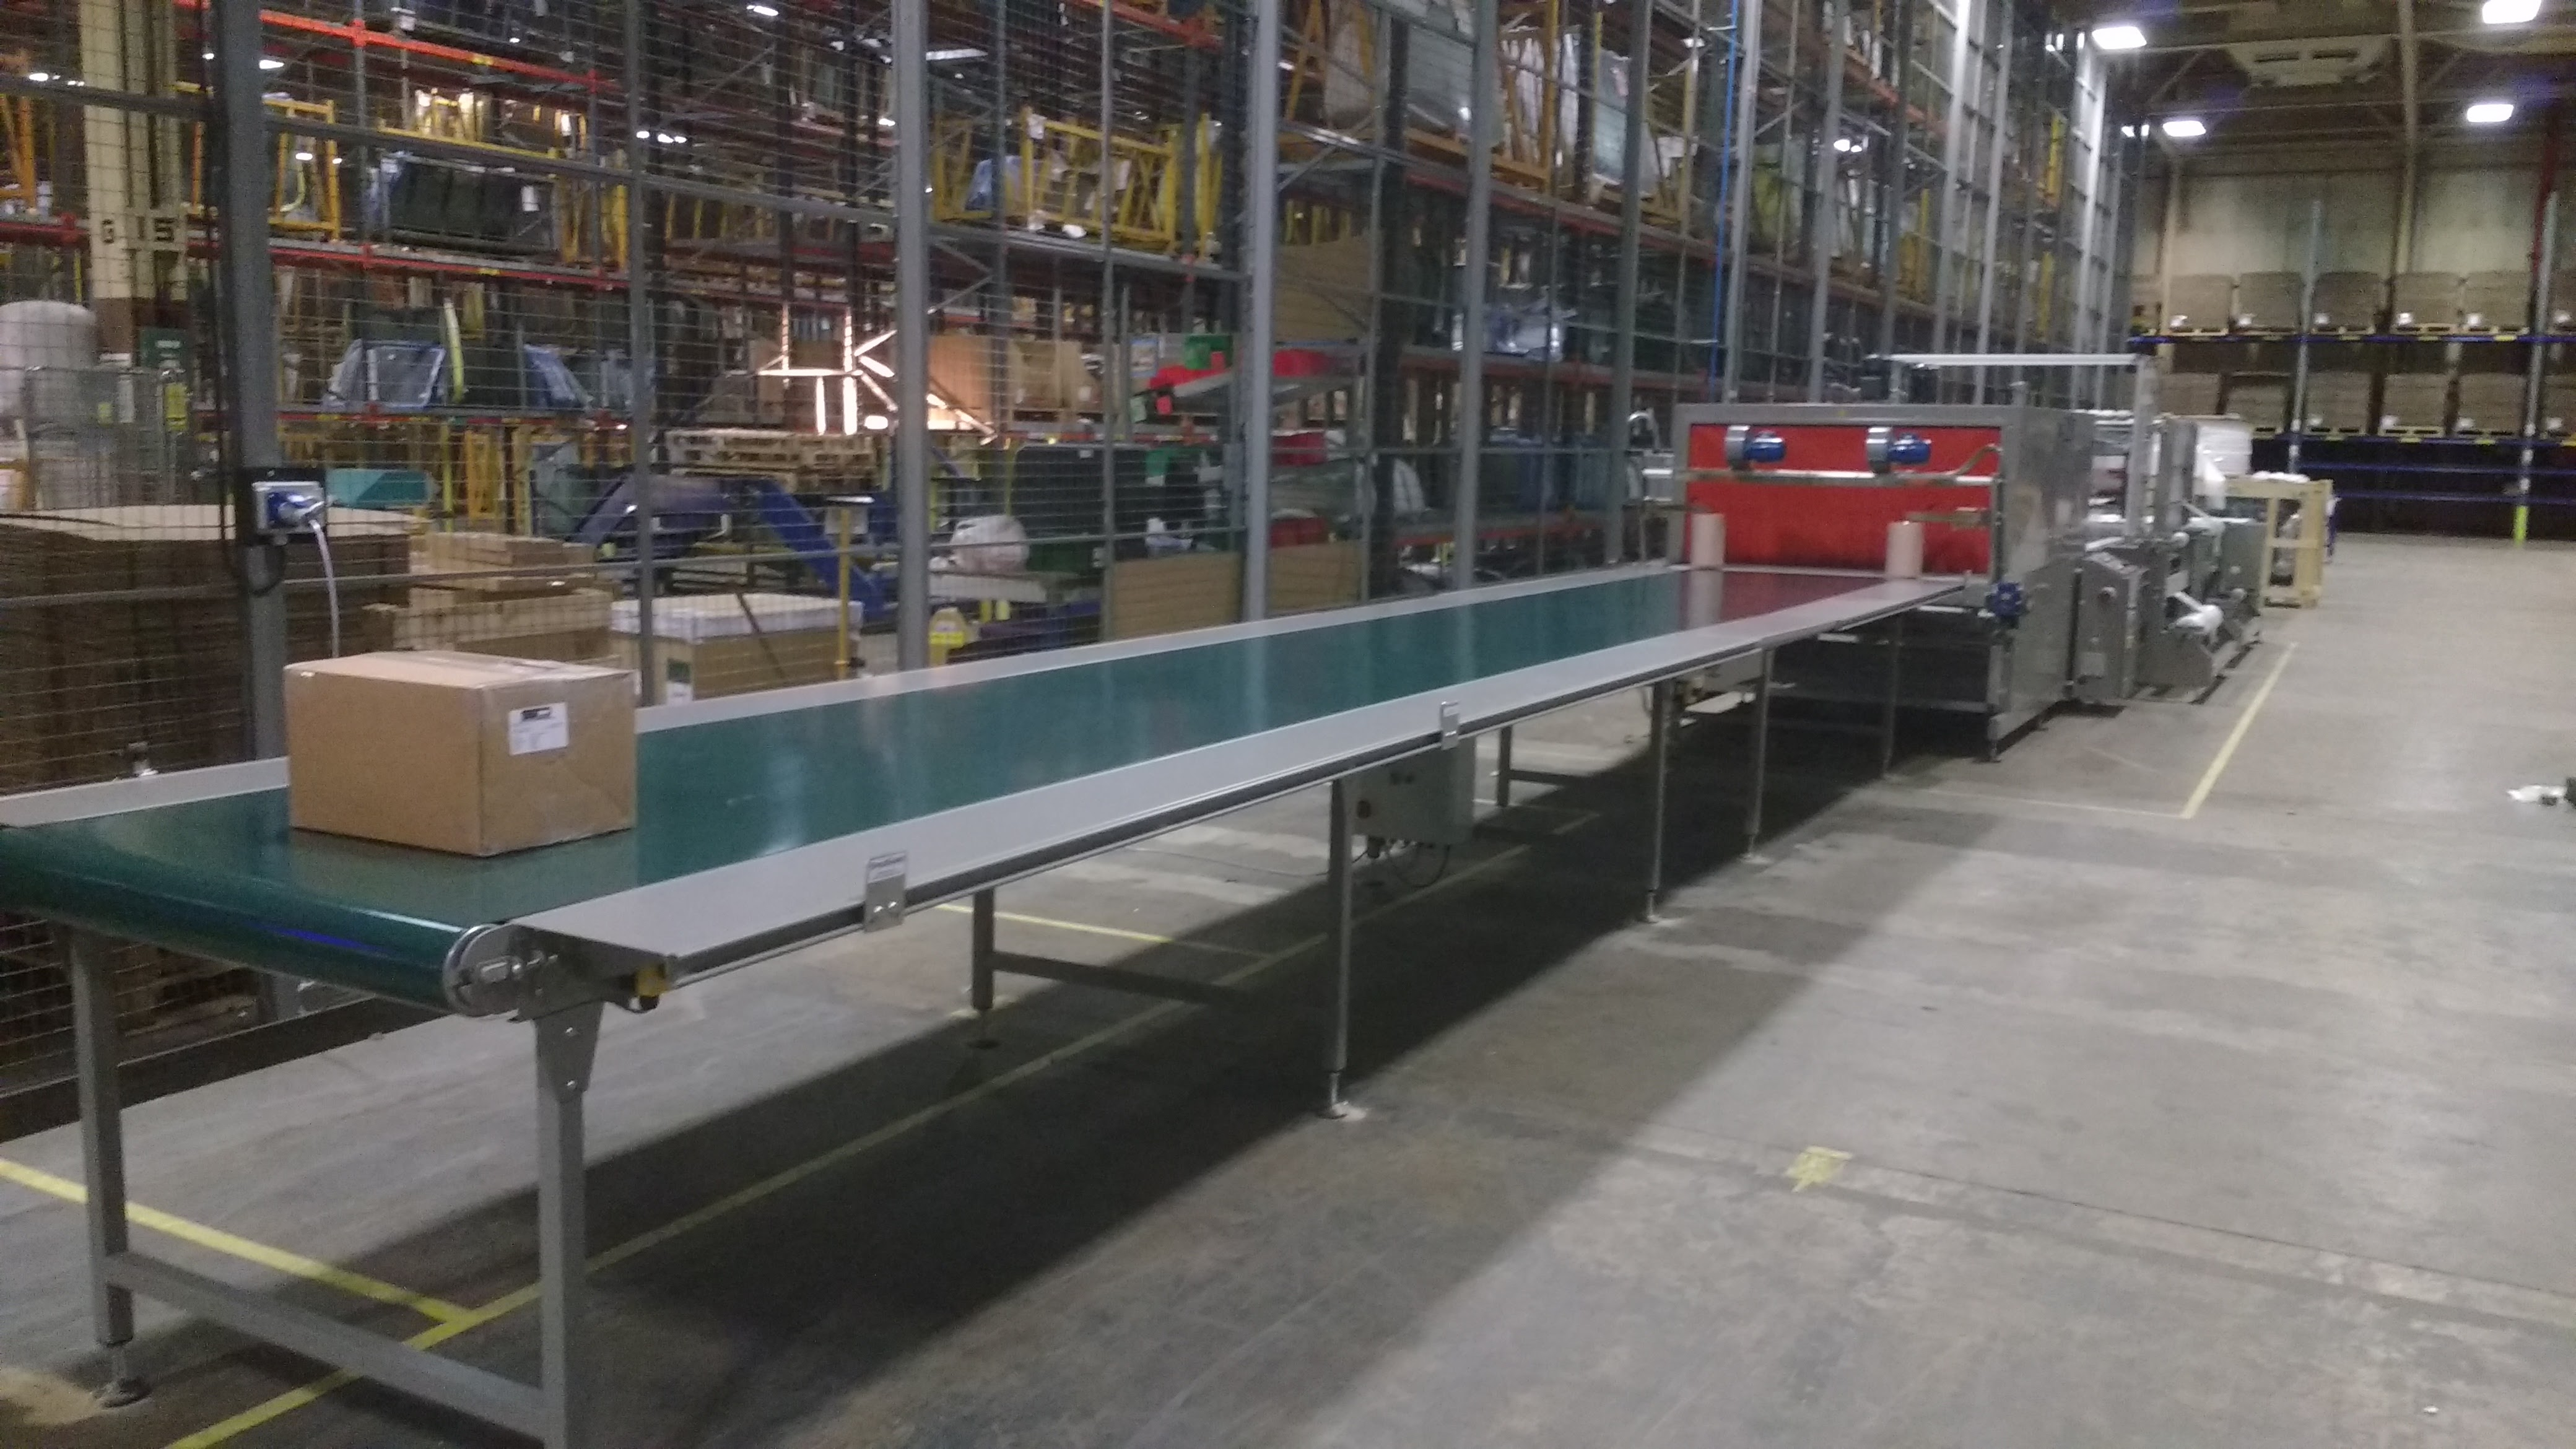 Conveyor belt with work tables